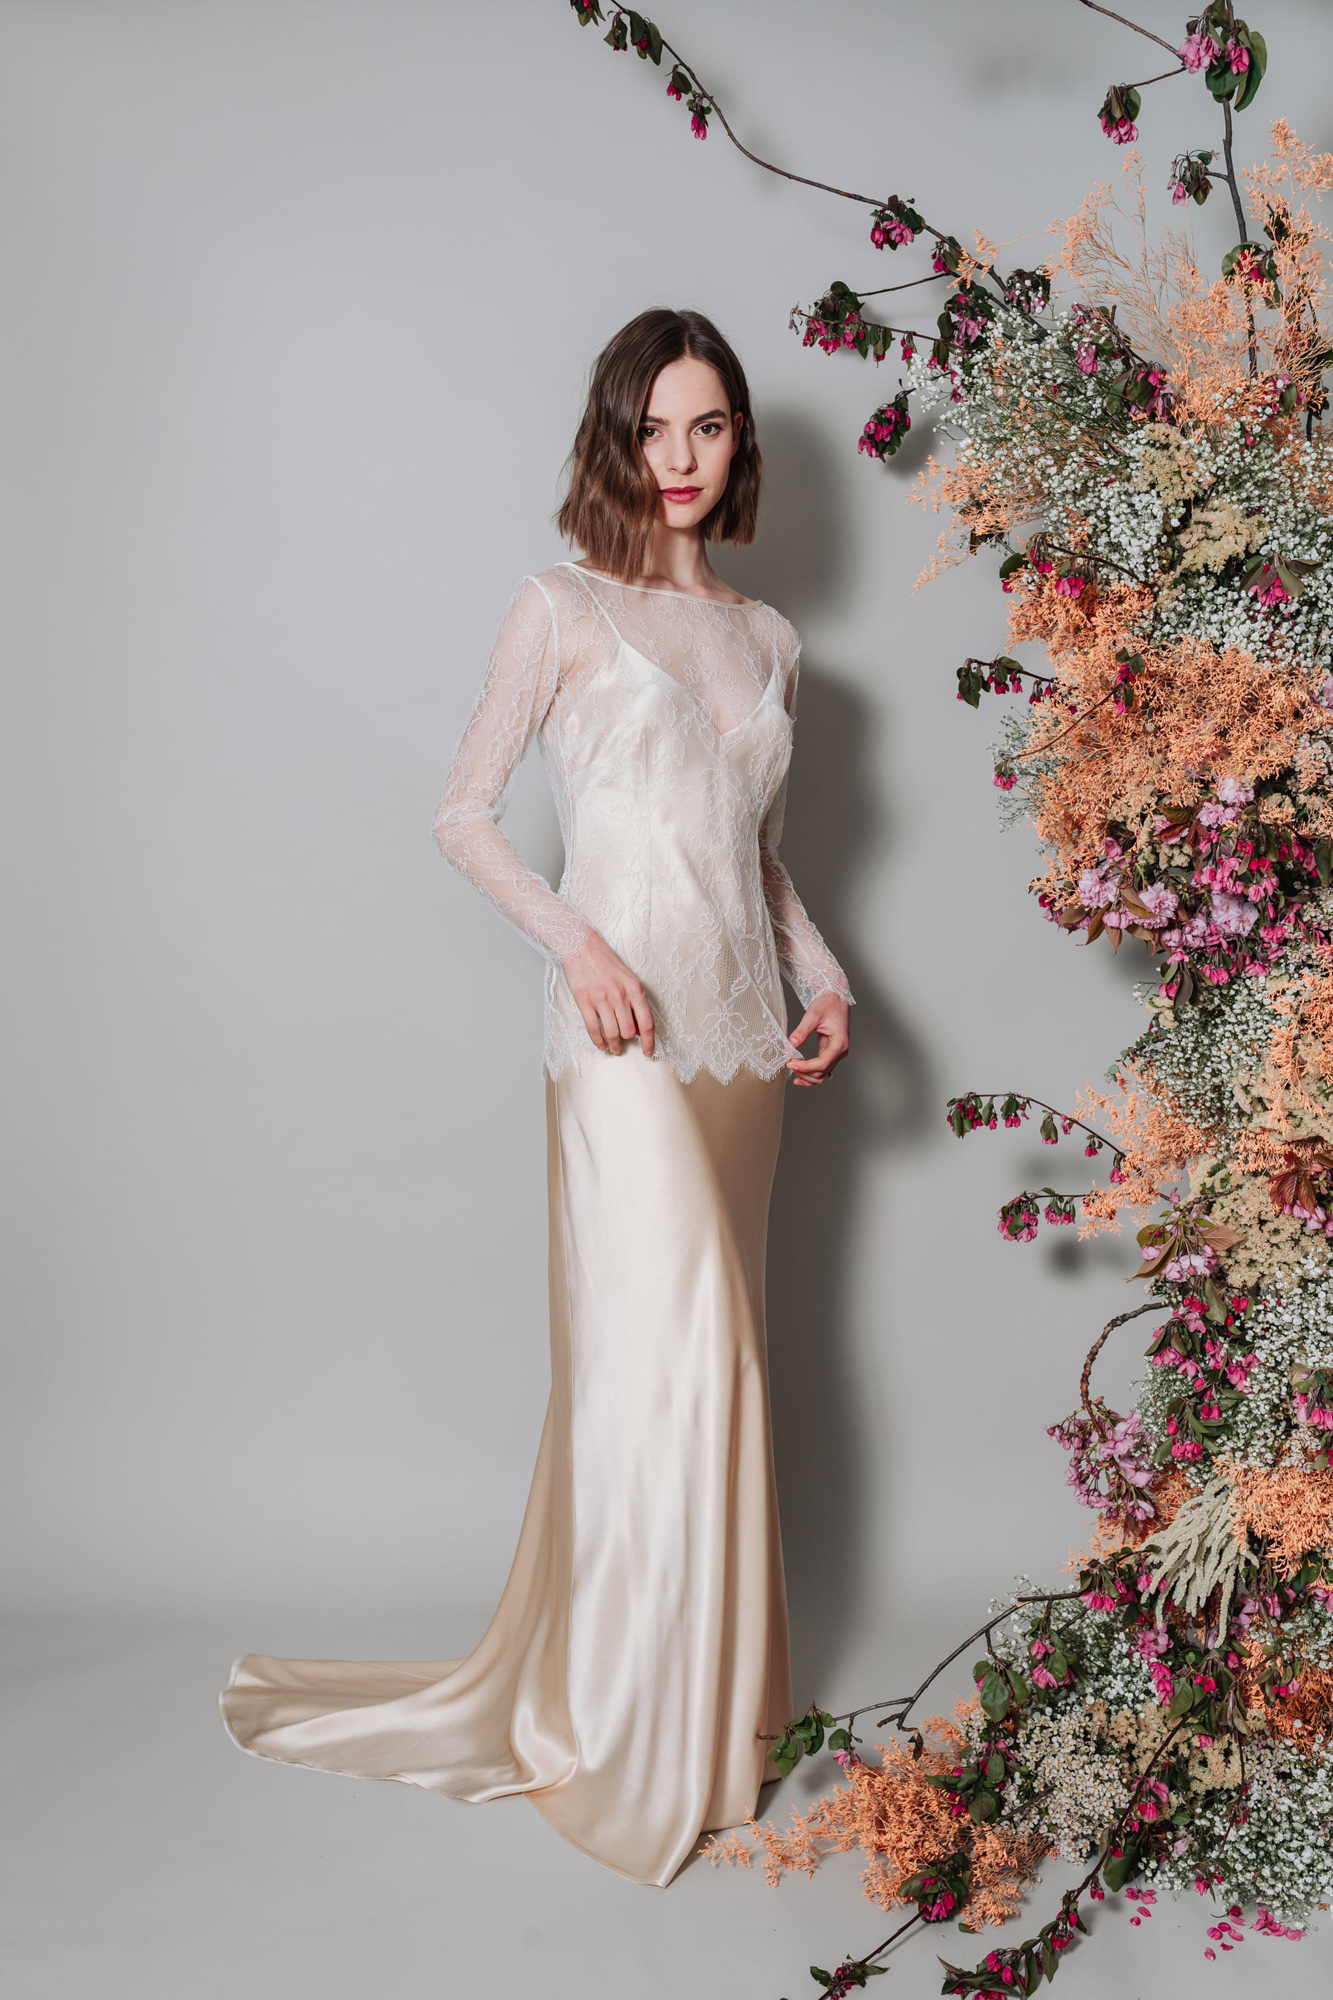 Kate-Beaumont-Sheffield-Thistle-Bridal-Separates-Two-Piece-Lace-Silk-Wedding-Gown-15.jpg